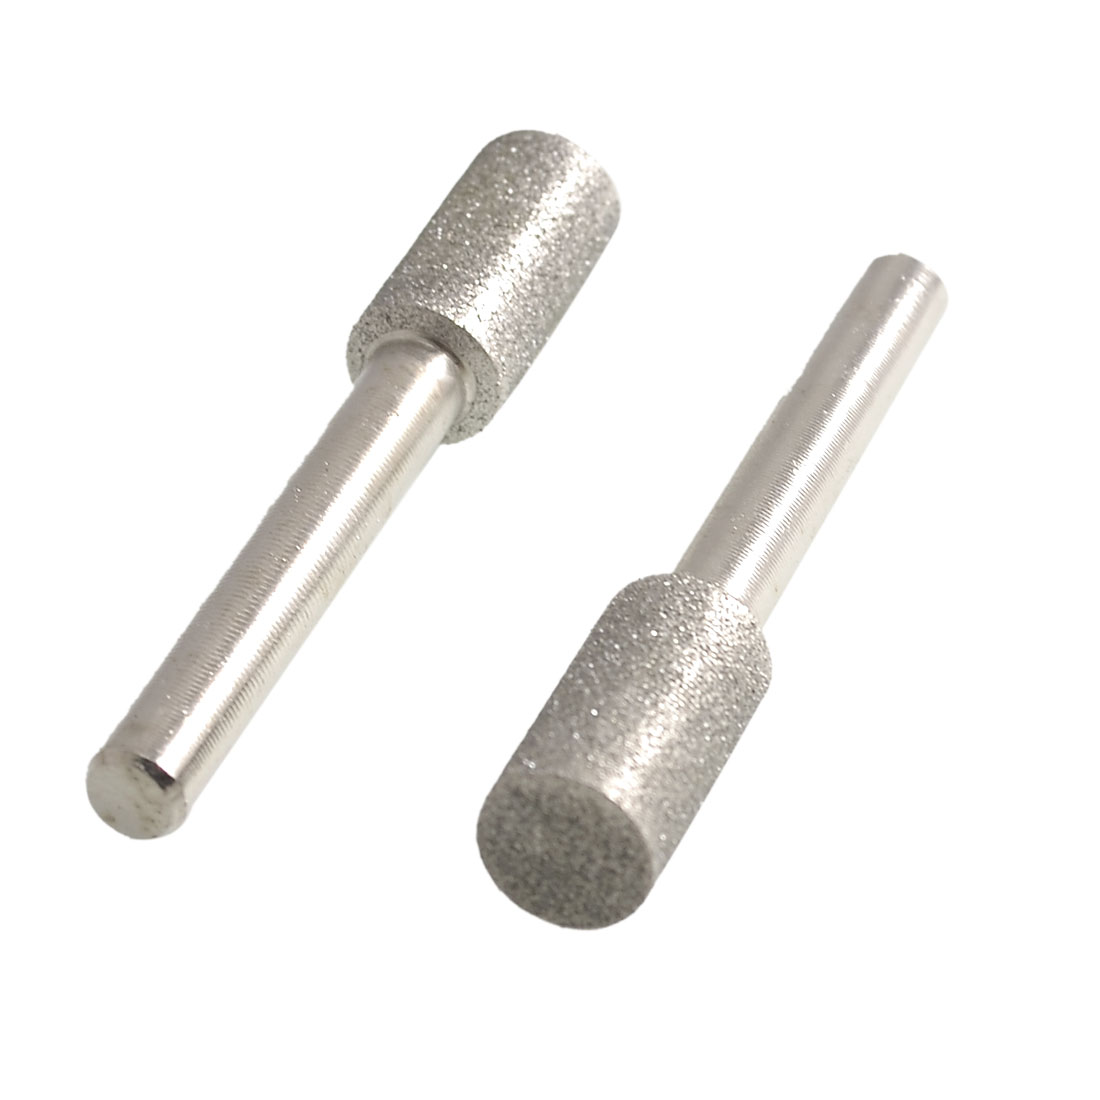 2 Pcs 6mmx10mm Cylindrical Tip Polisher Diamond Mounted Points File